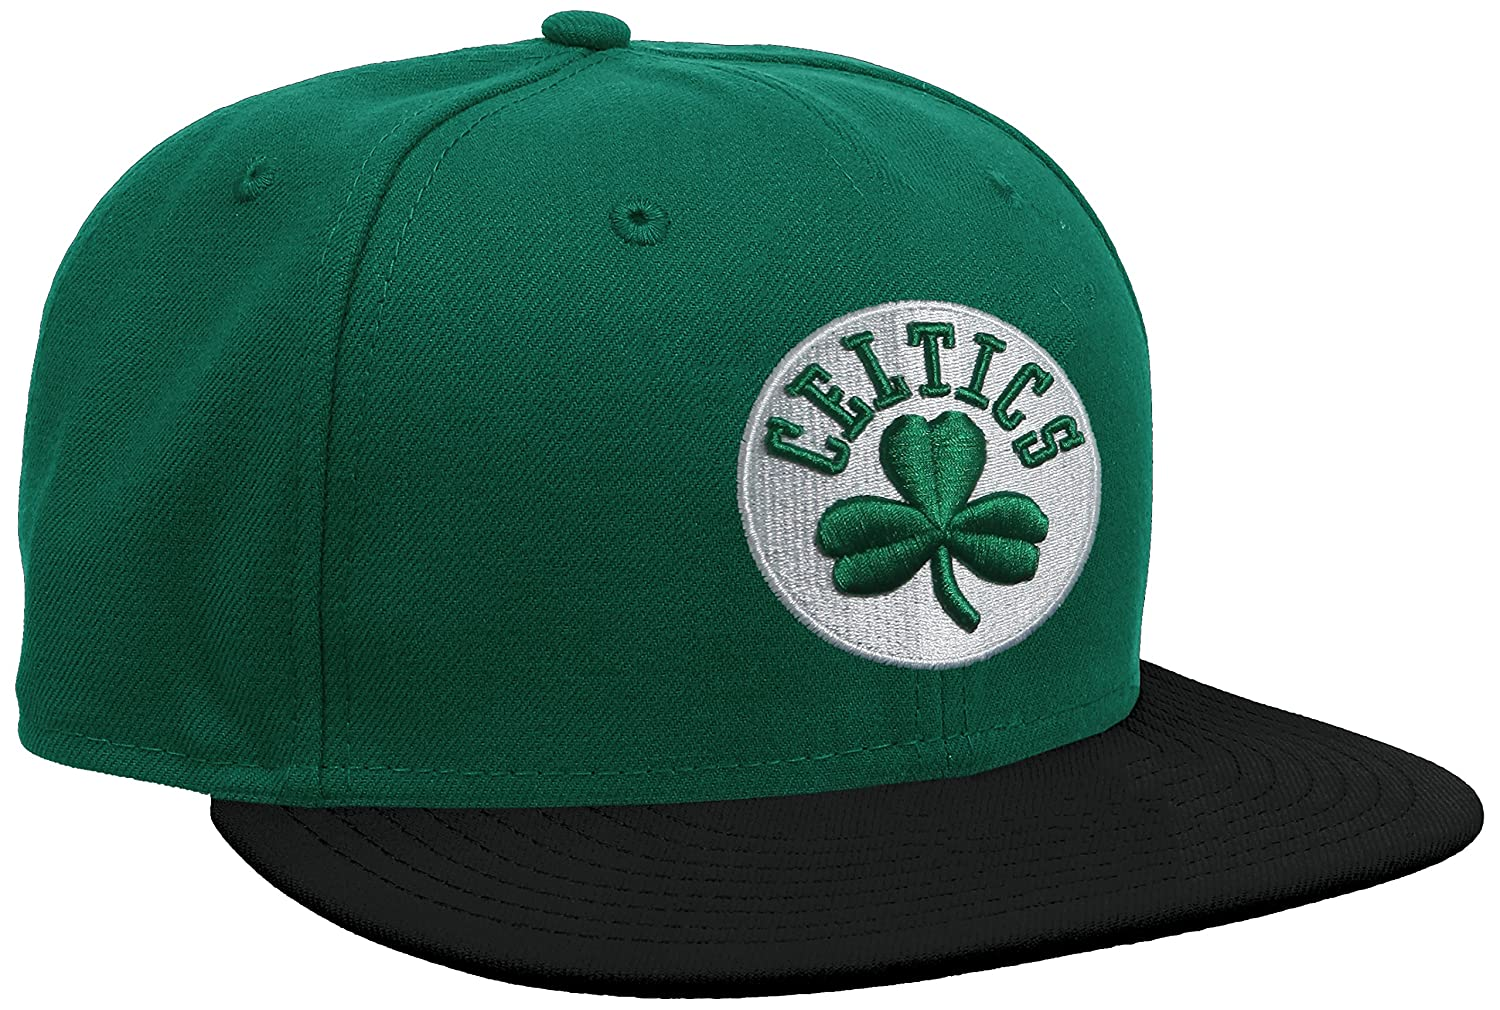 New Era 10862336 Gorra, Unisex niños, Verde/Negro, 6 3/4: Amazon ...